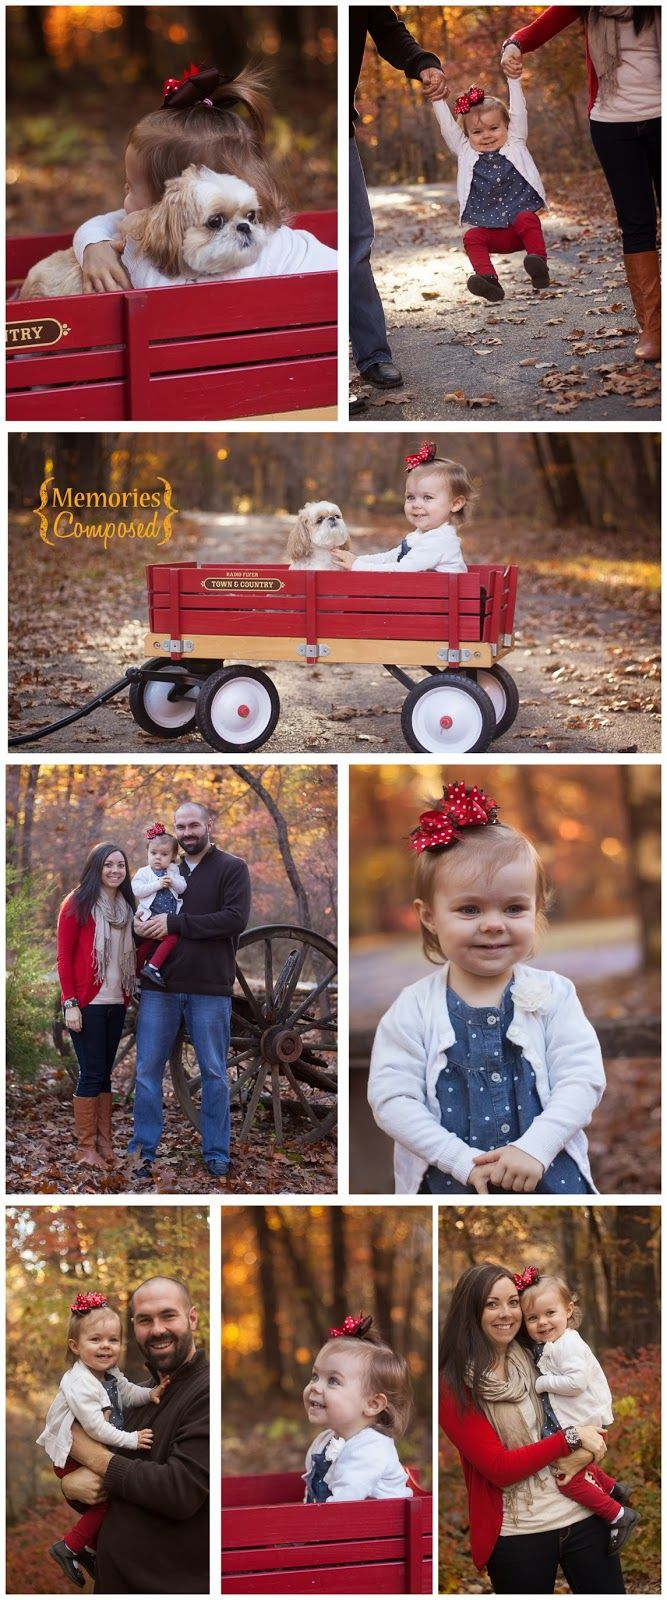 A fun fall family photography session with a sweet toddler.  Bring the family dog along for some adorable shots!!